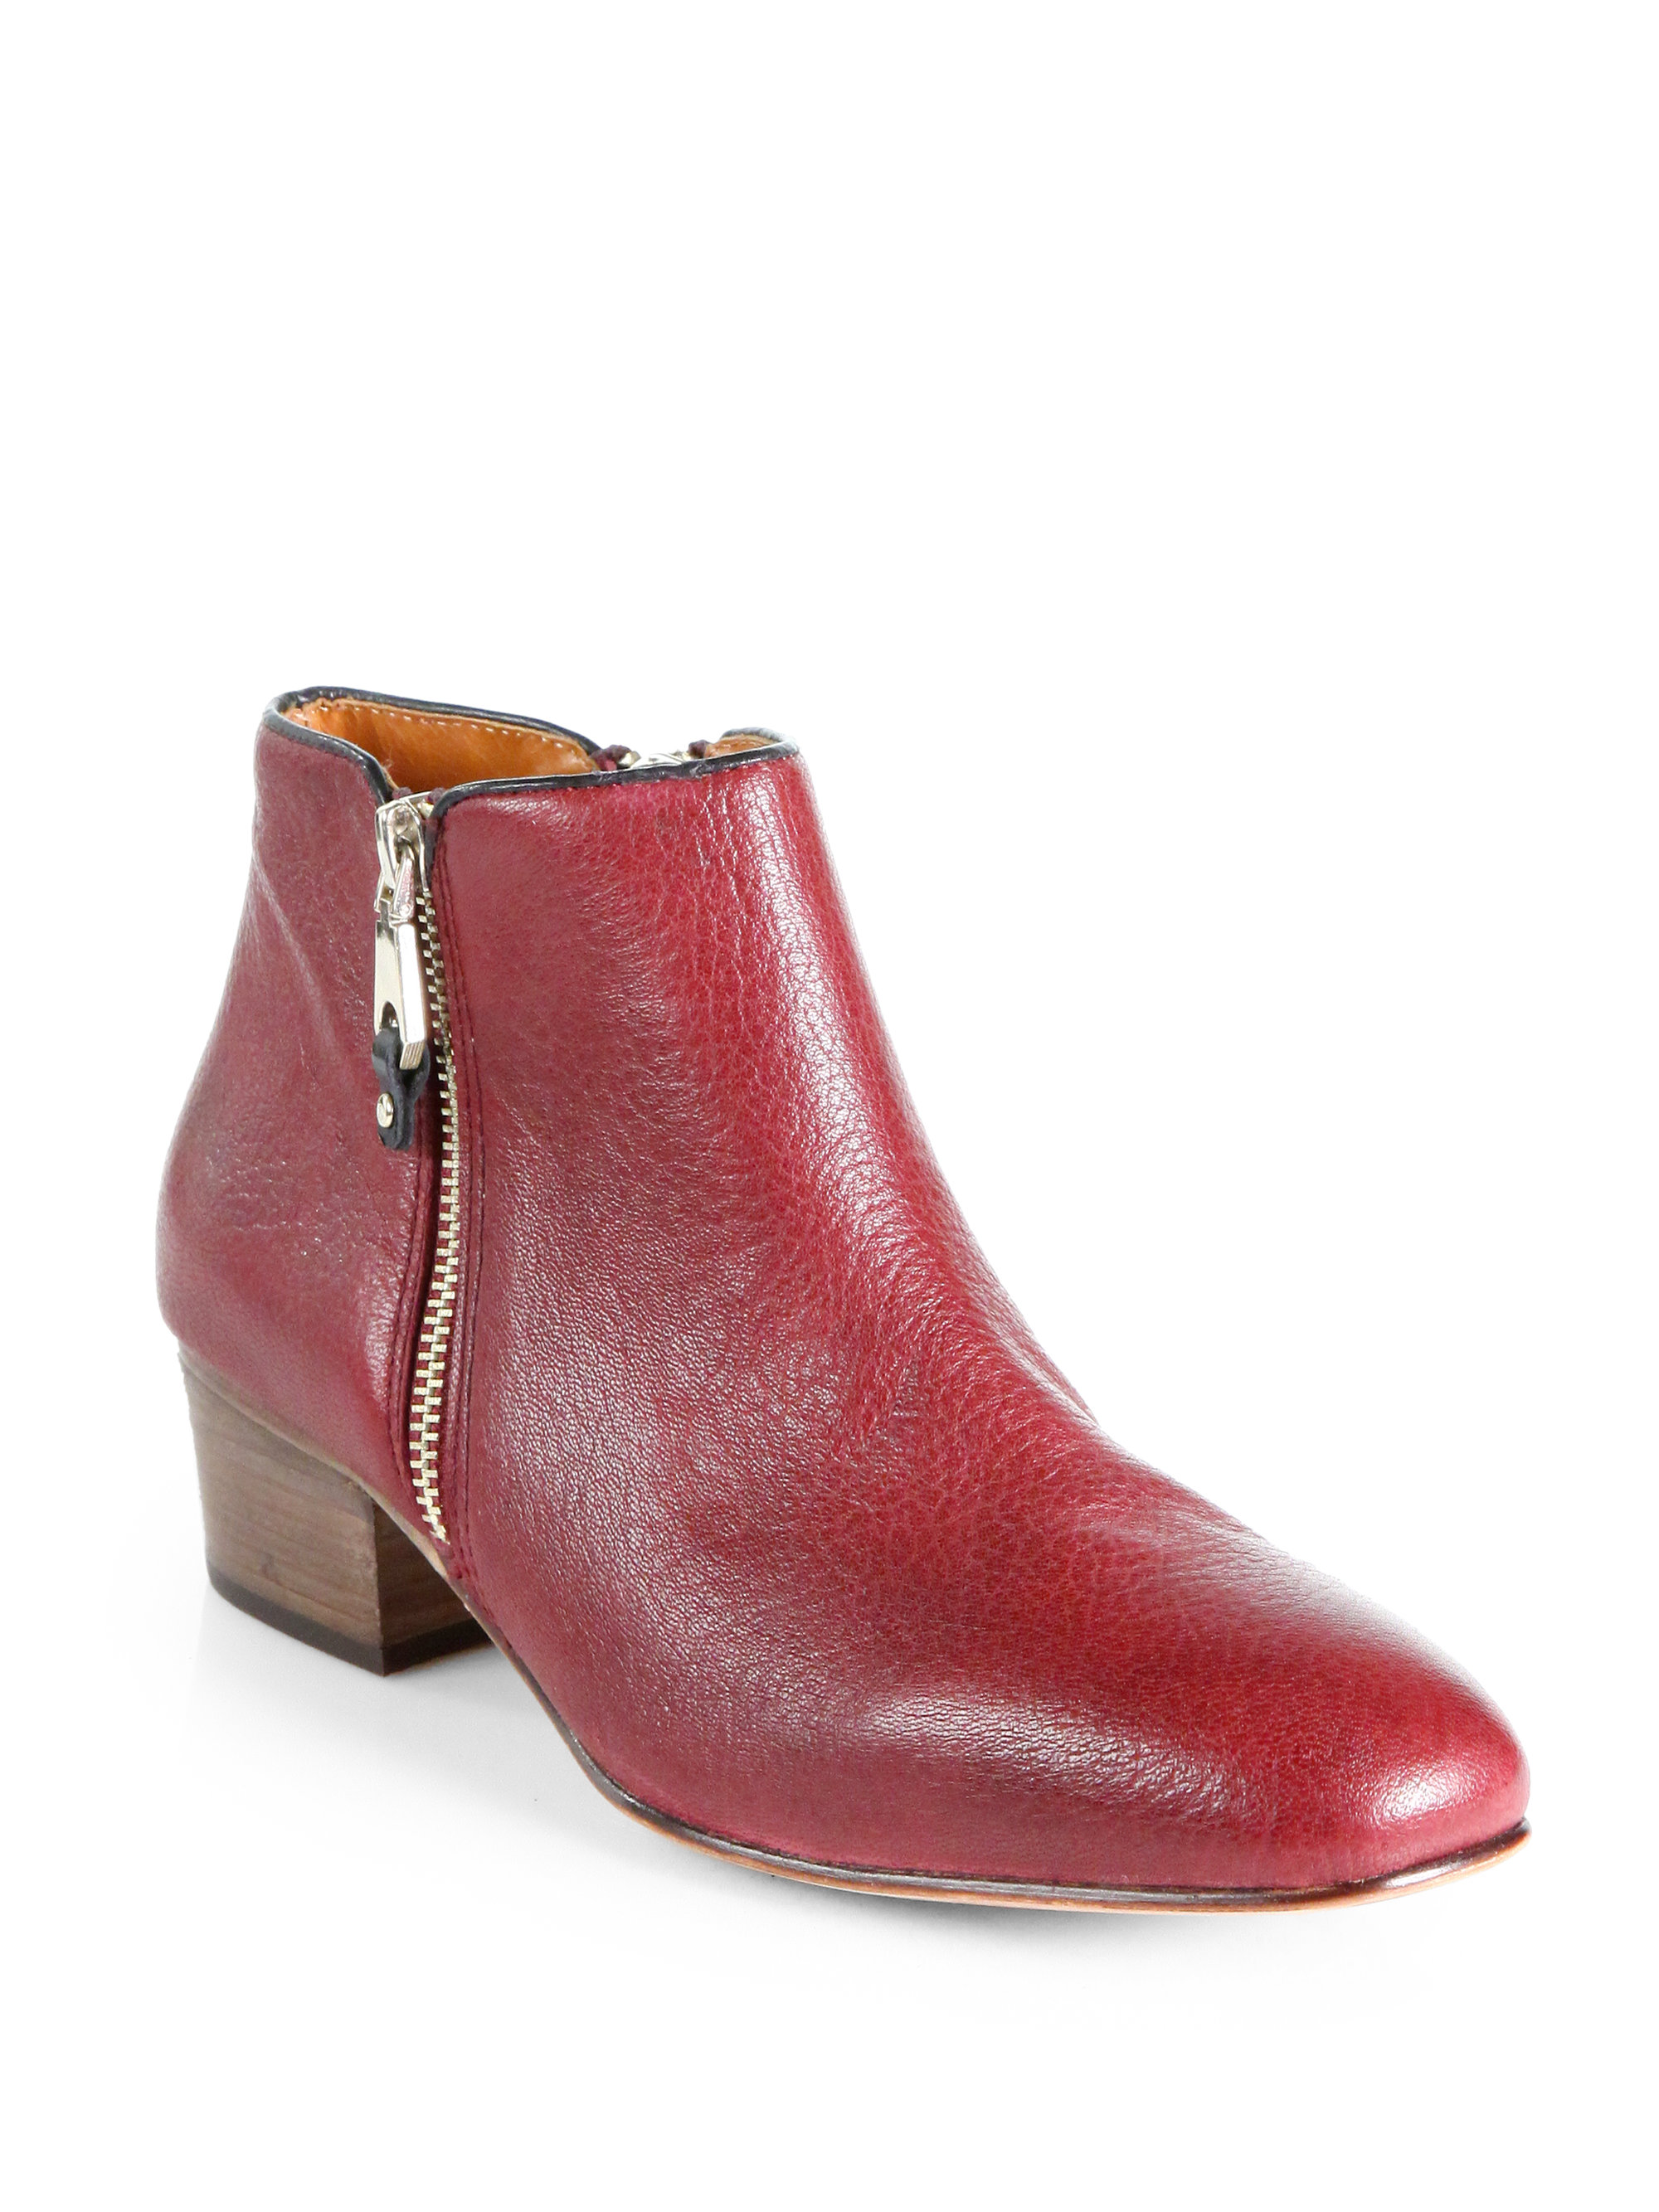 Rebecca Minkoff Macri Pebbled Leather Ankle Boots In Red